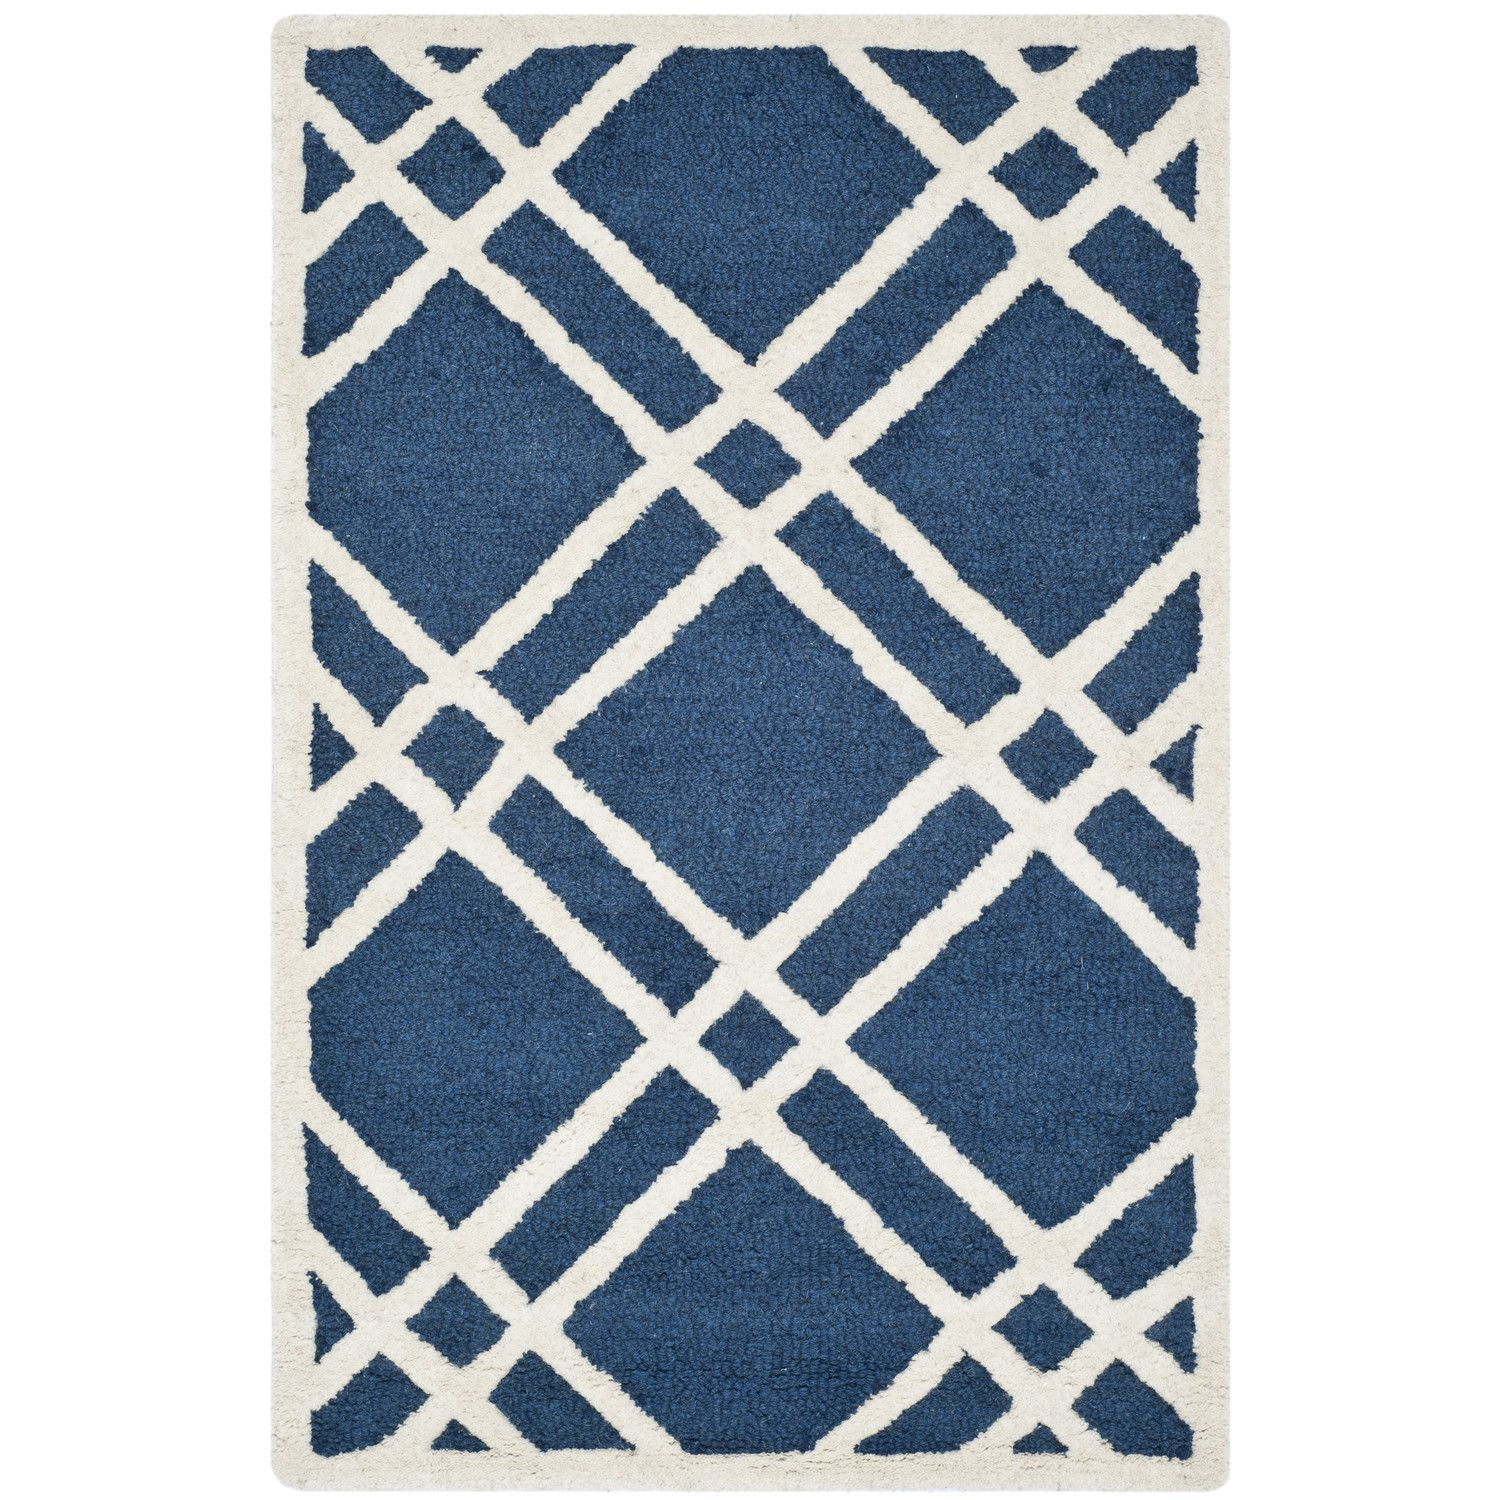 3x5 Next To Bed With The Shaggy Silver Circle Rug Under Chair Safavieh Cambridge Navy Blue Ivory Area Rug Geometric Area Rug Area Rugs Rugs